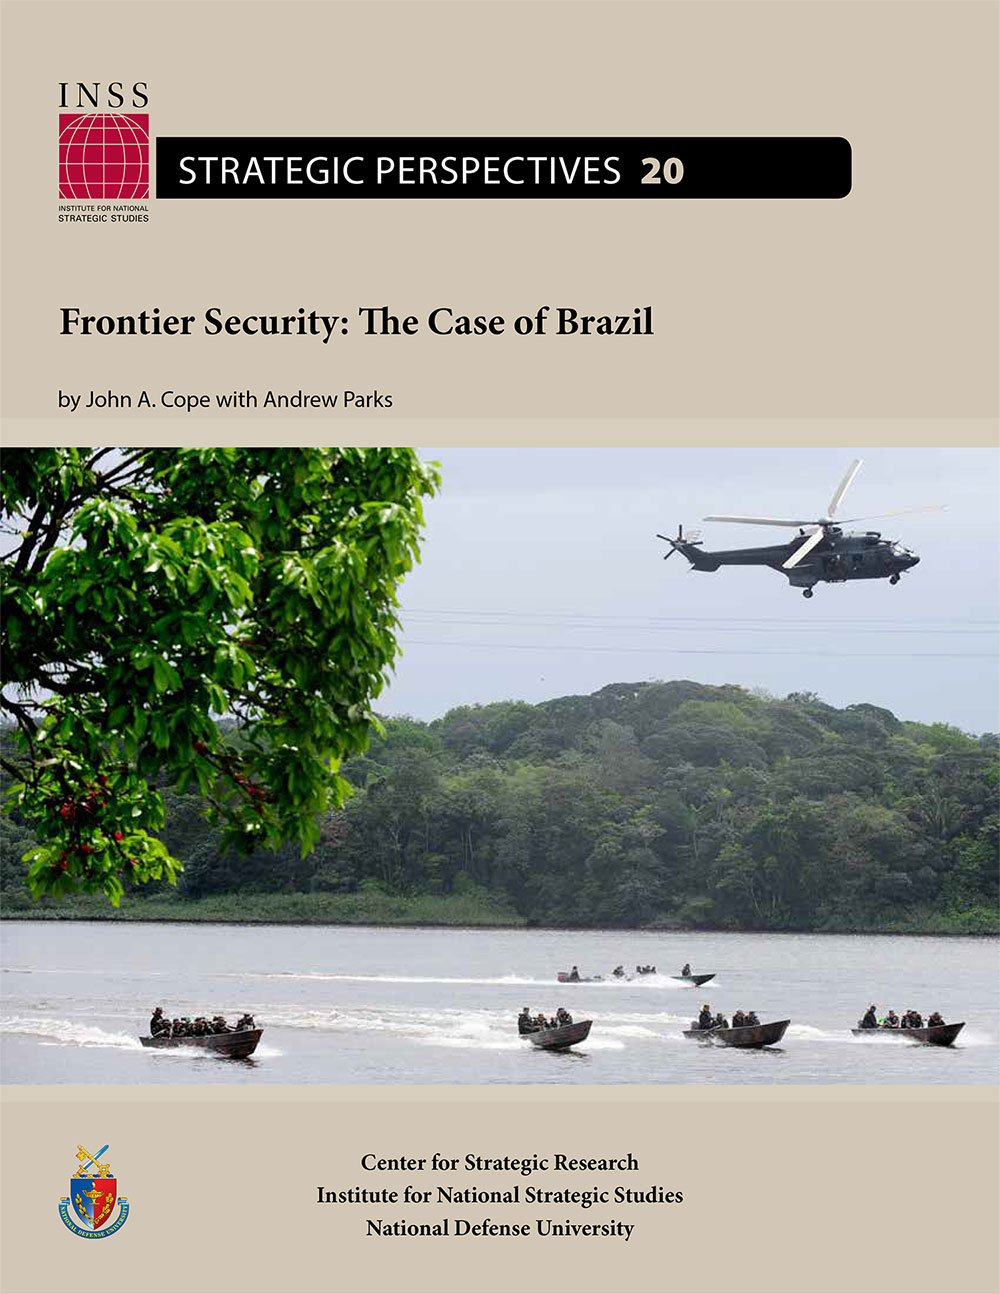 Strategic Perspectives 20